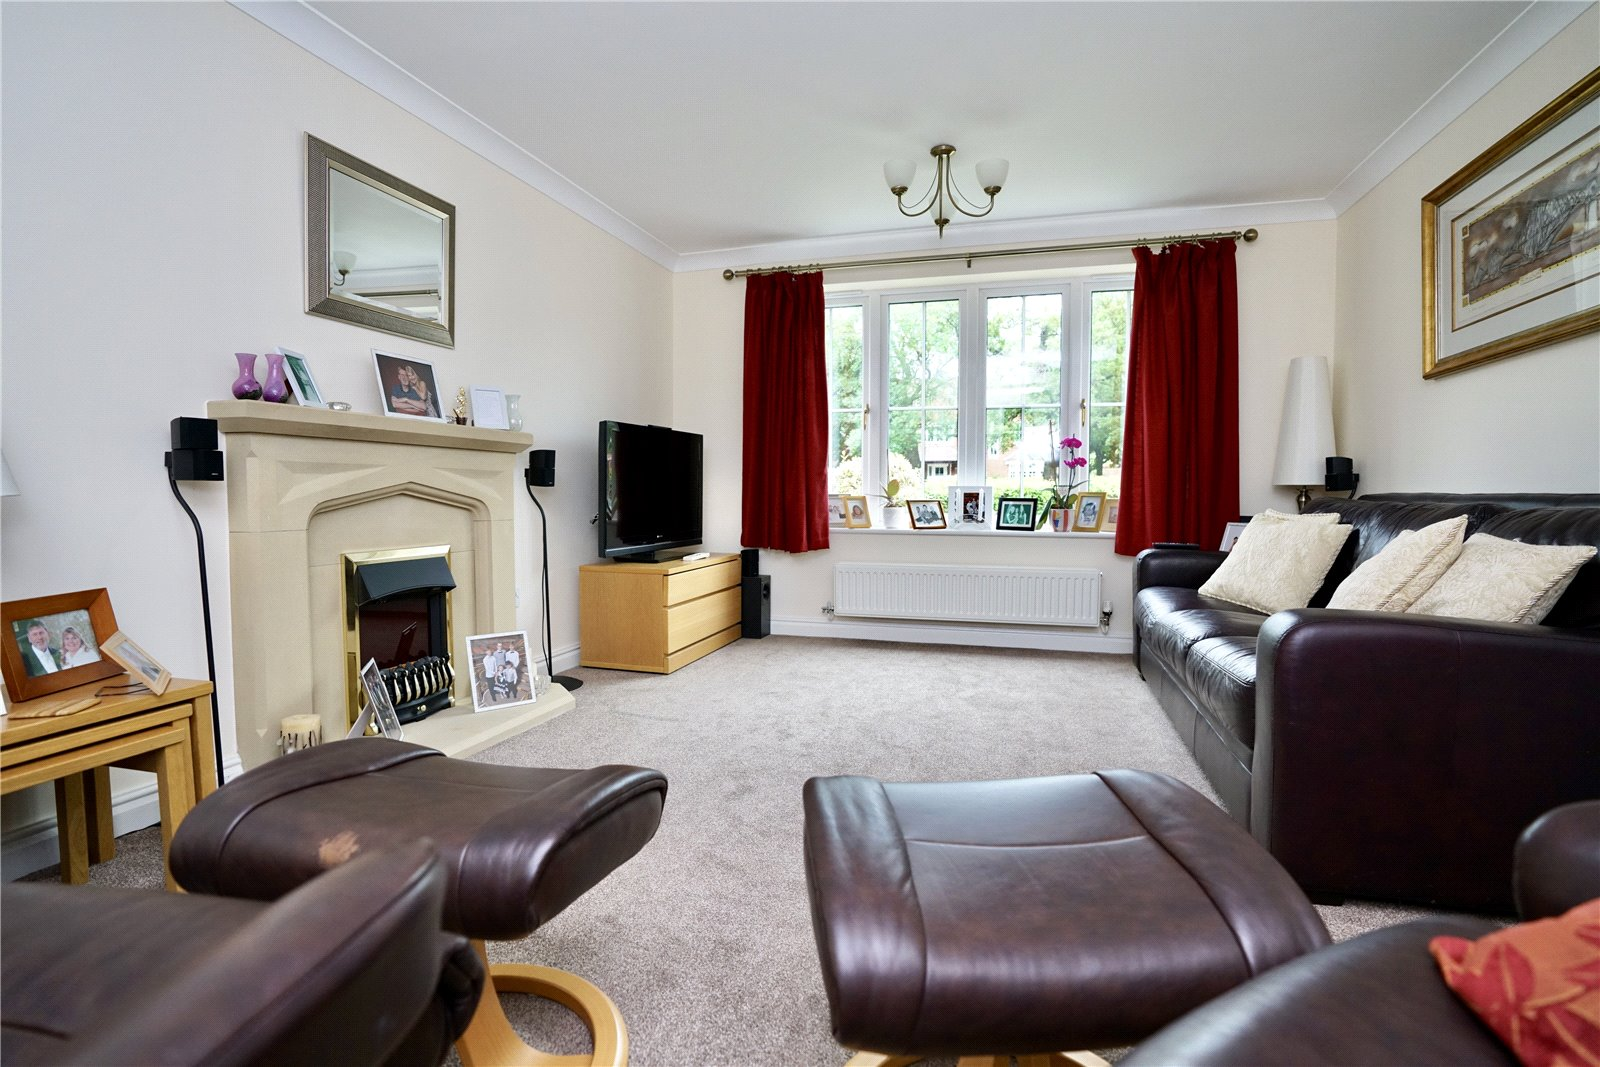 4 bed house for sale in Great Gransden  - Property Image 2